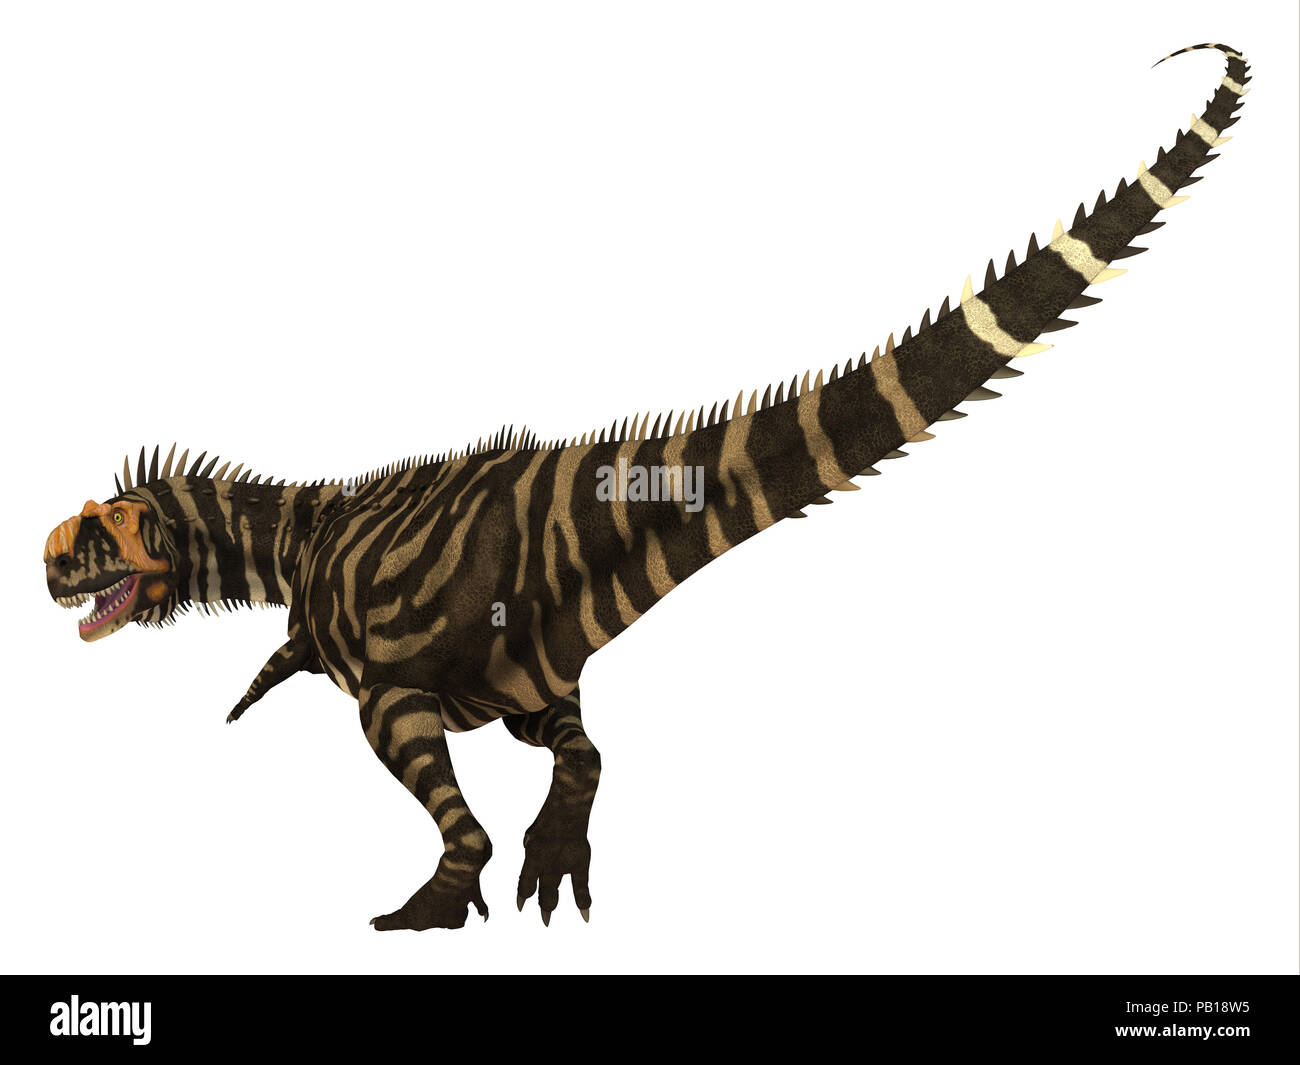 Rajasaurus Dinosaur Tail - Rajasaurus was a carnivorous theropod dinosaur that lived in India during the Cretaceous Period. - Stock Image